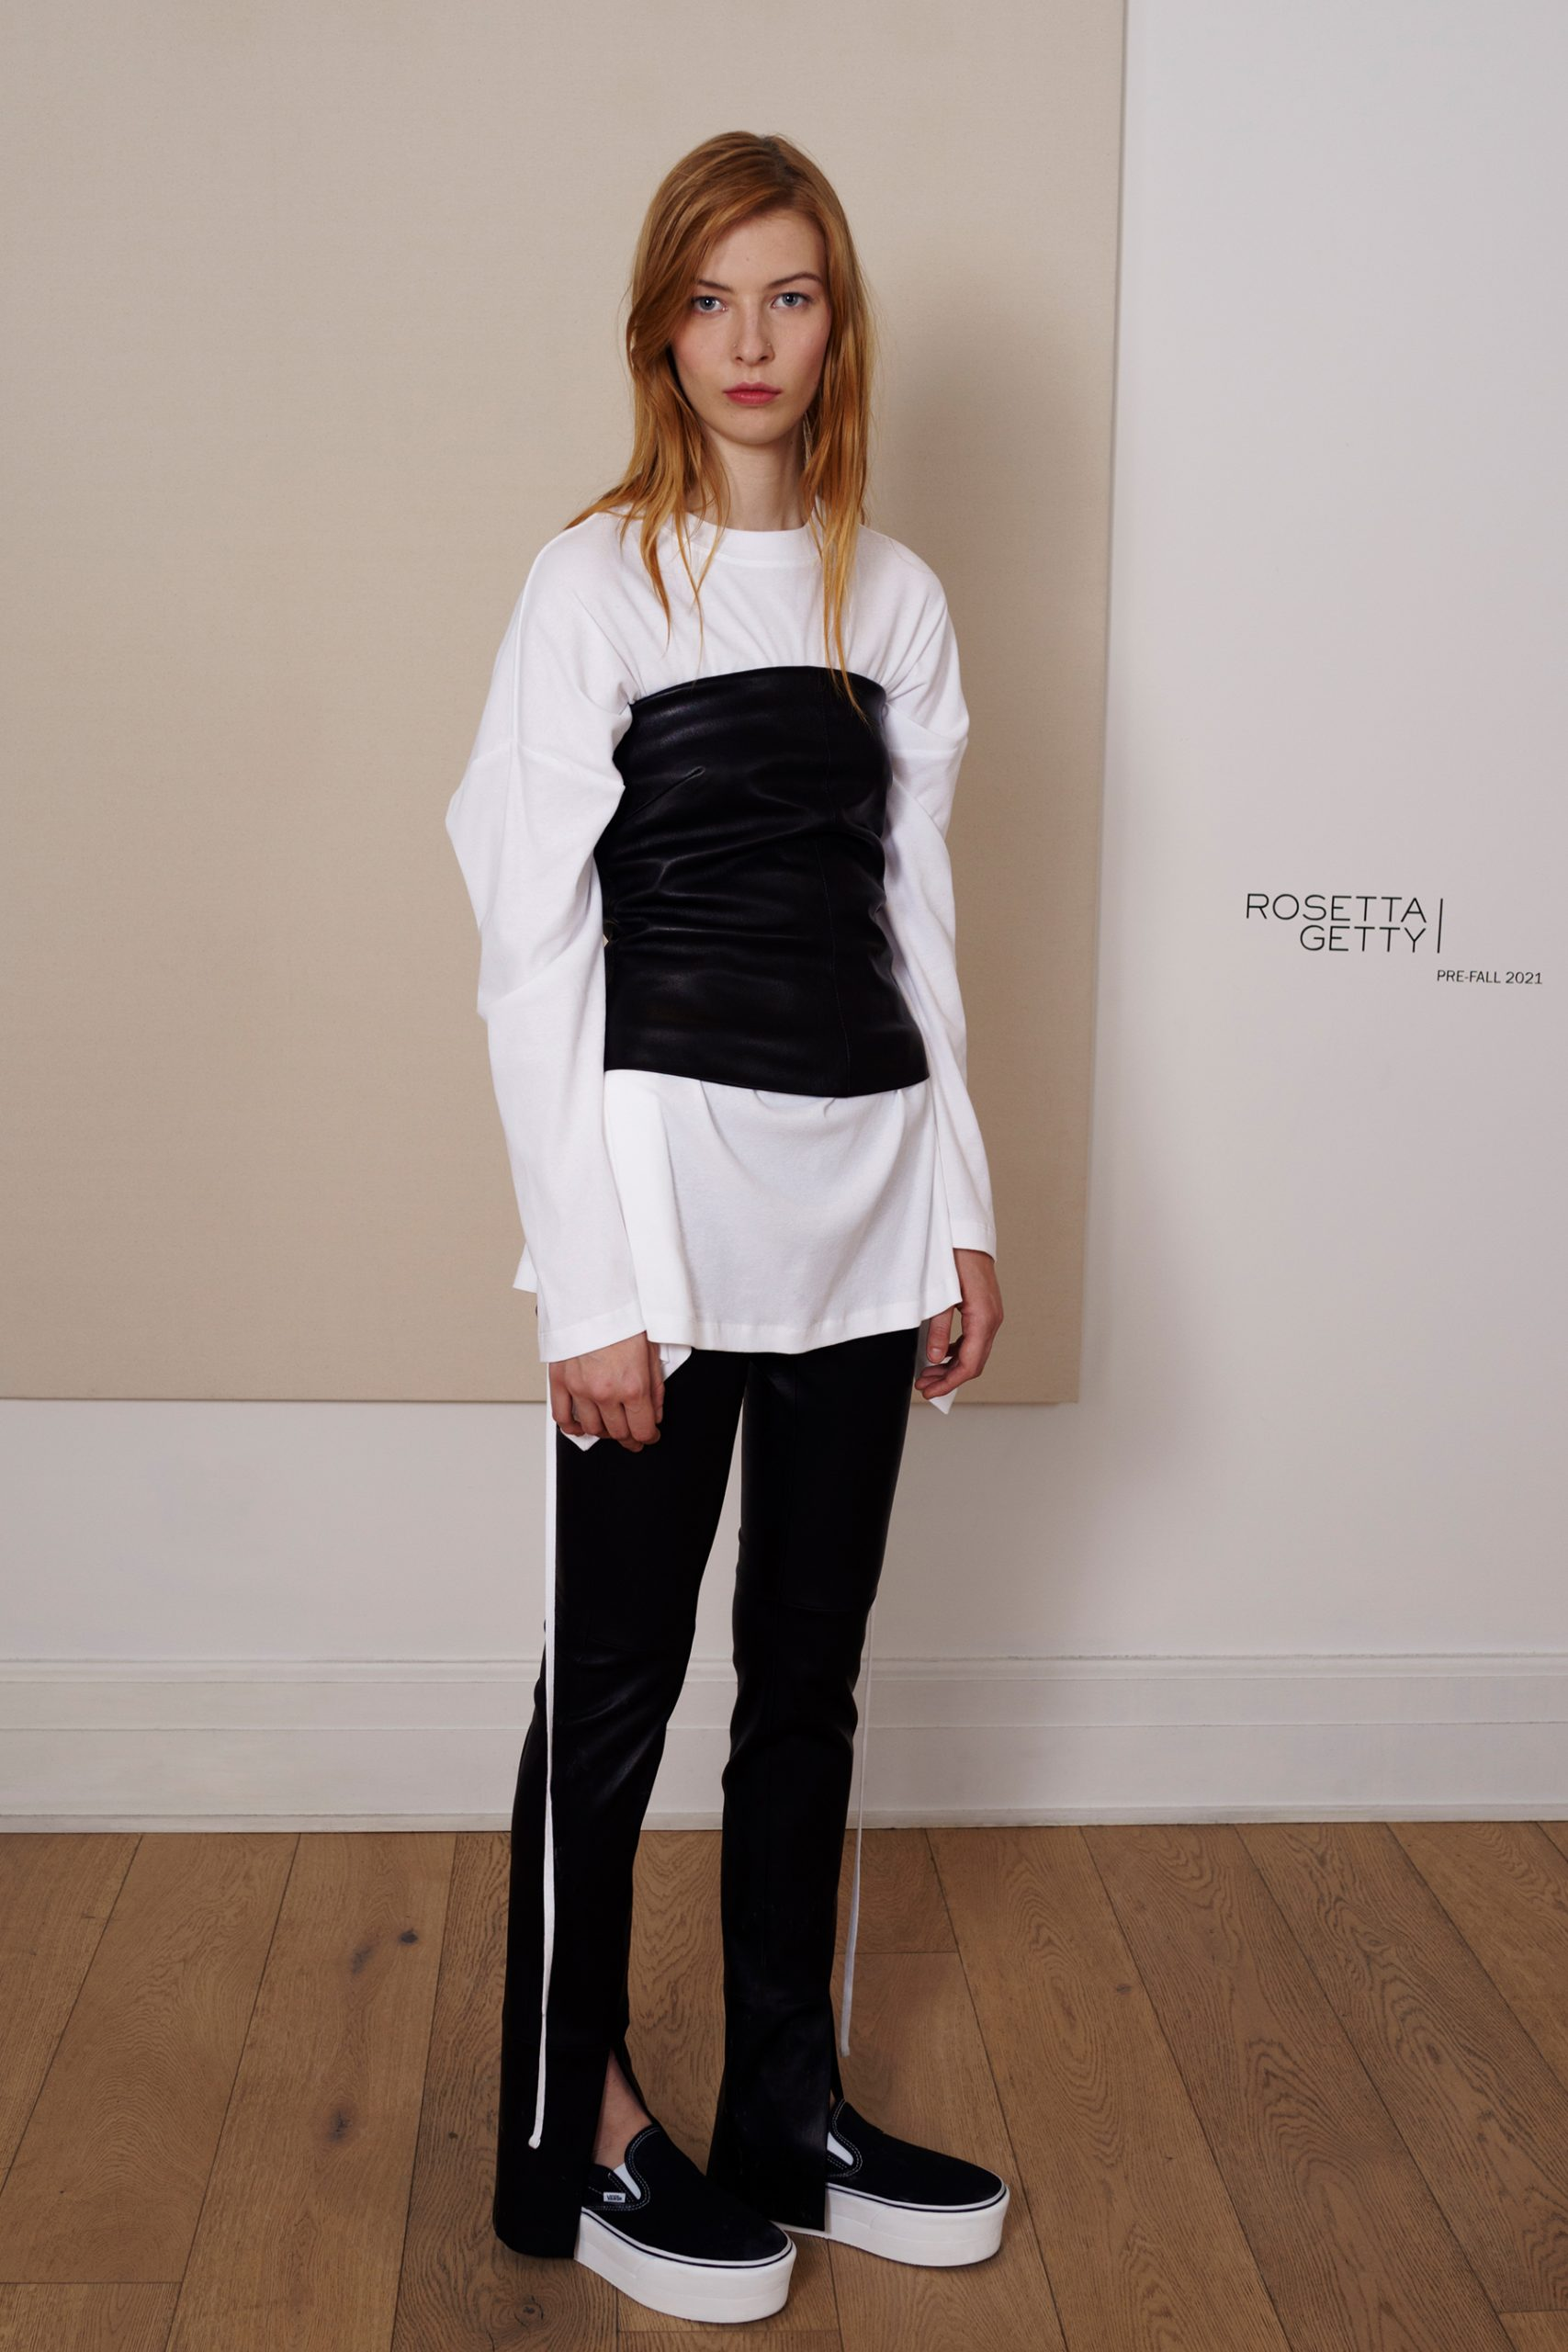 Rosetta Getty Pre-Fall 2021 RTW Collection Photos